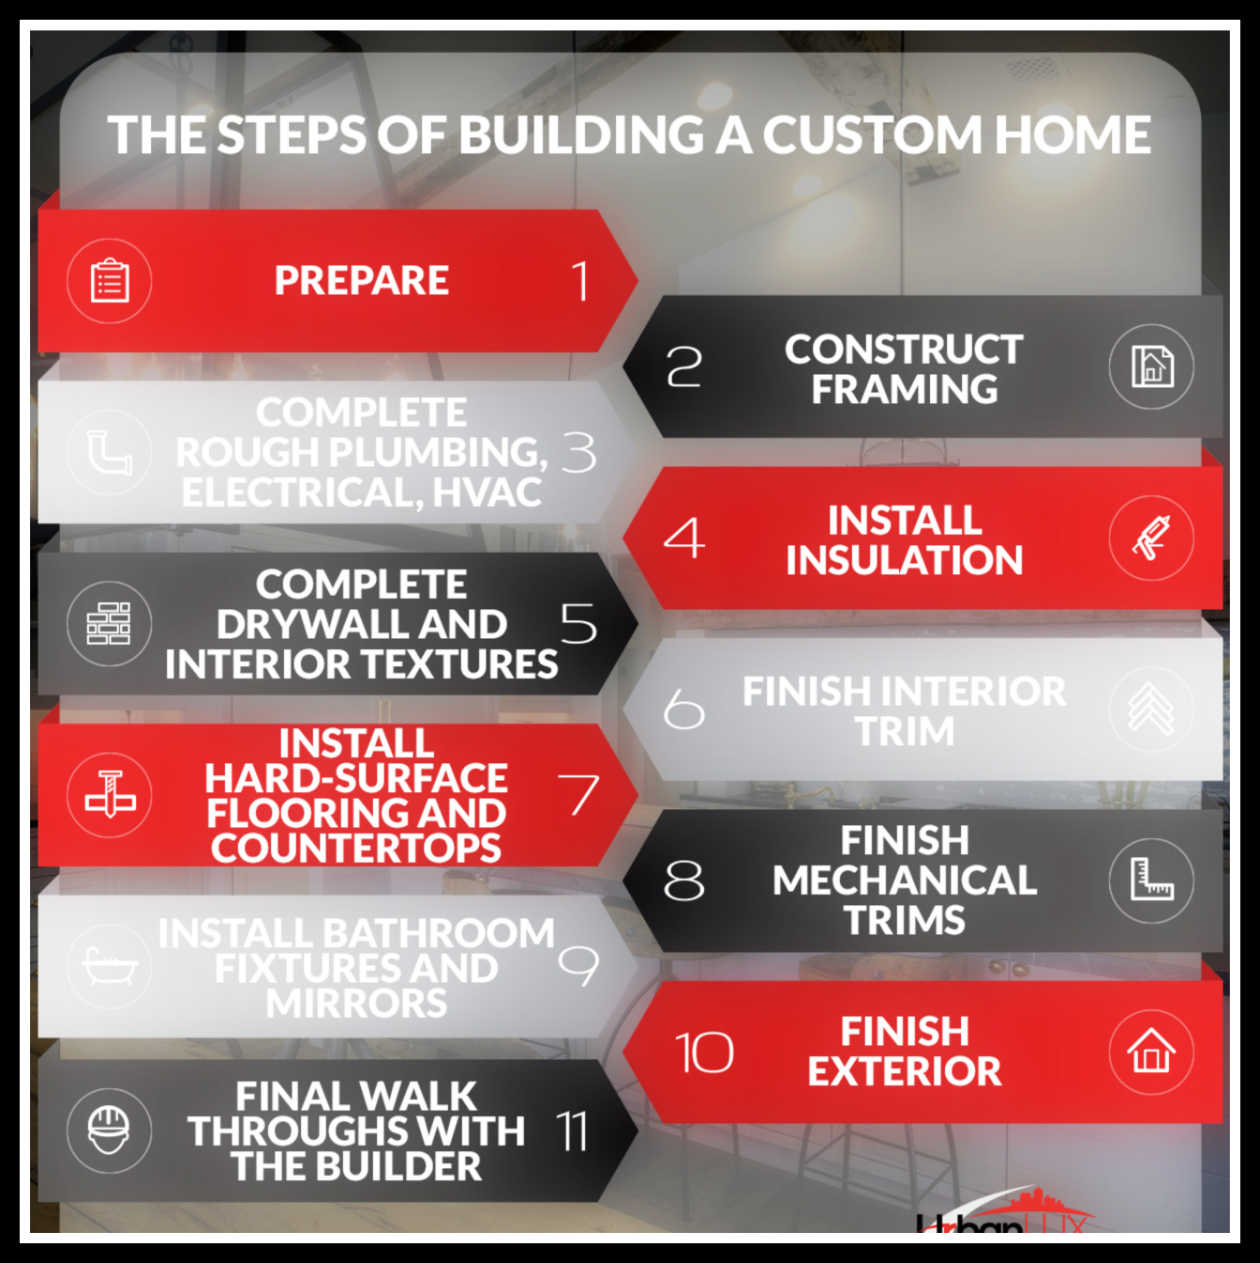 Infographic of the steps for Building a Custom Home